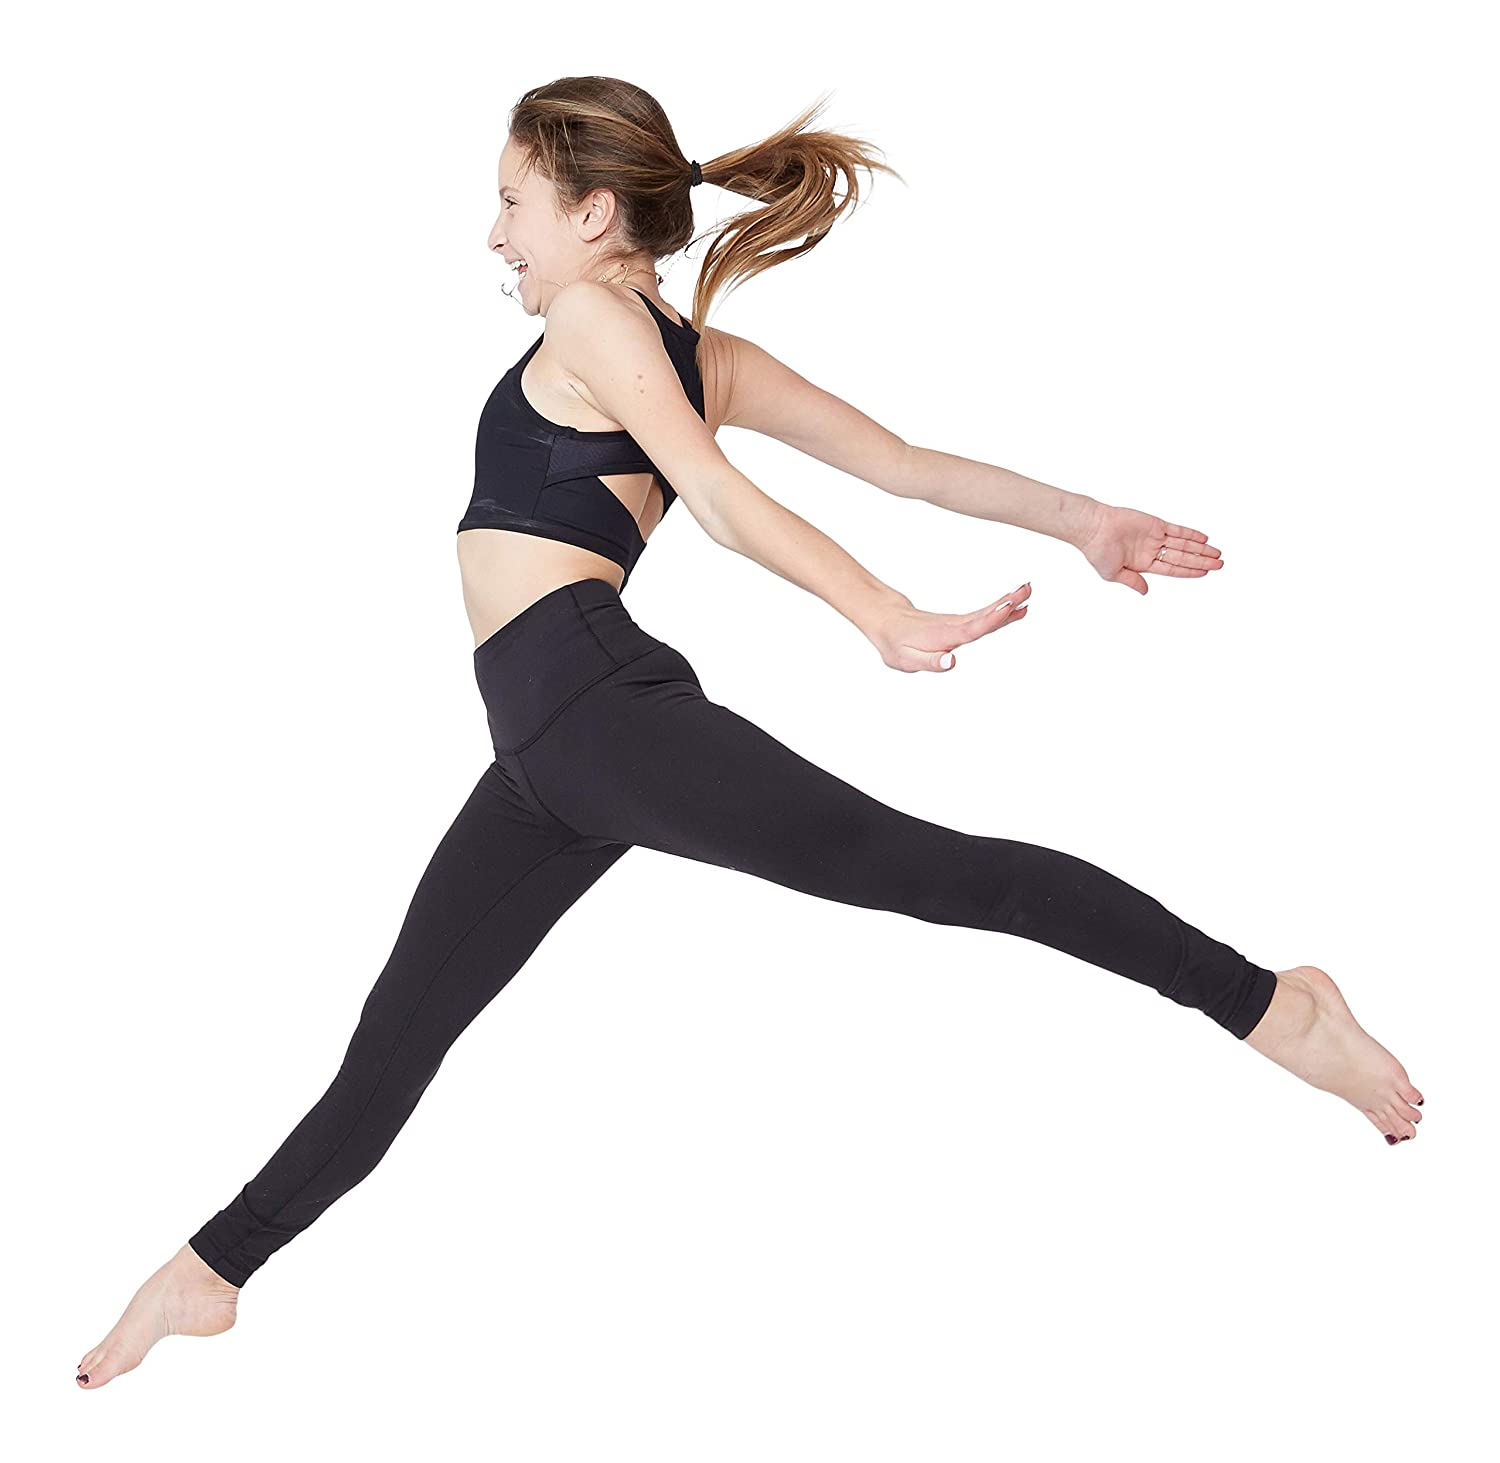 Yellowberry Most Popular Hoop Legging Great Yoga Pants for Tweens and Best for Teen Girls